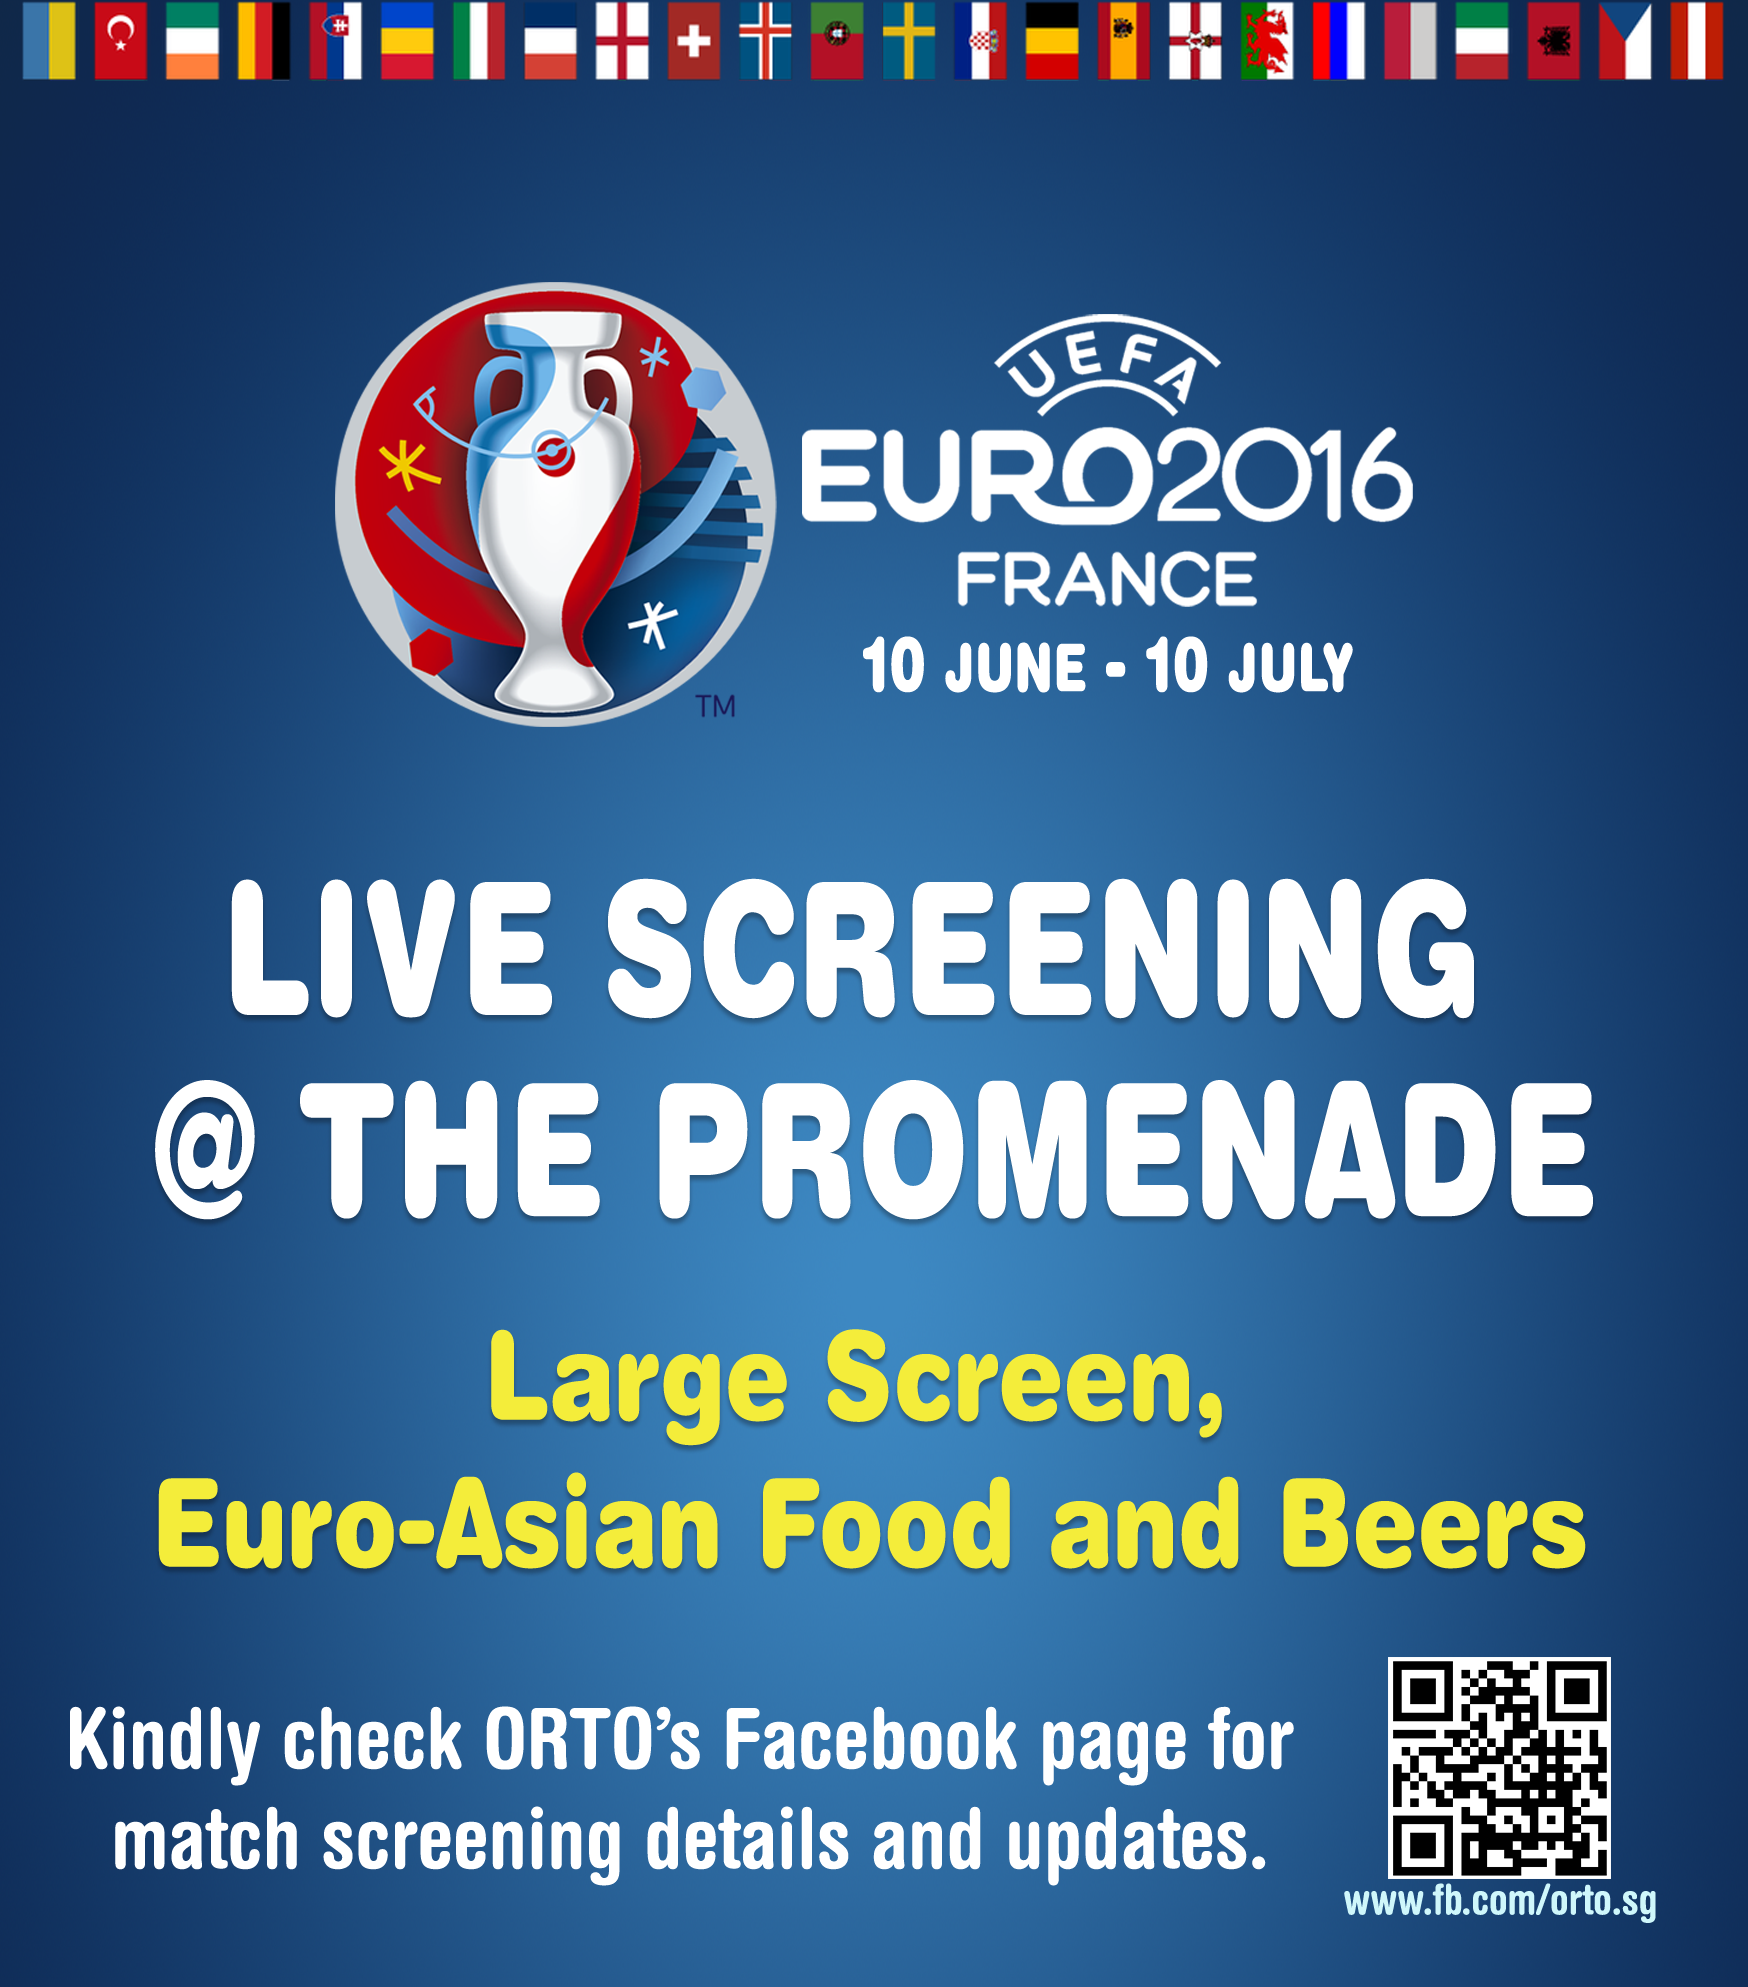 ways-to-enjoy-euro-2016-singapore-venuerific-blog-the-promenade-poster